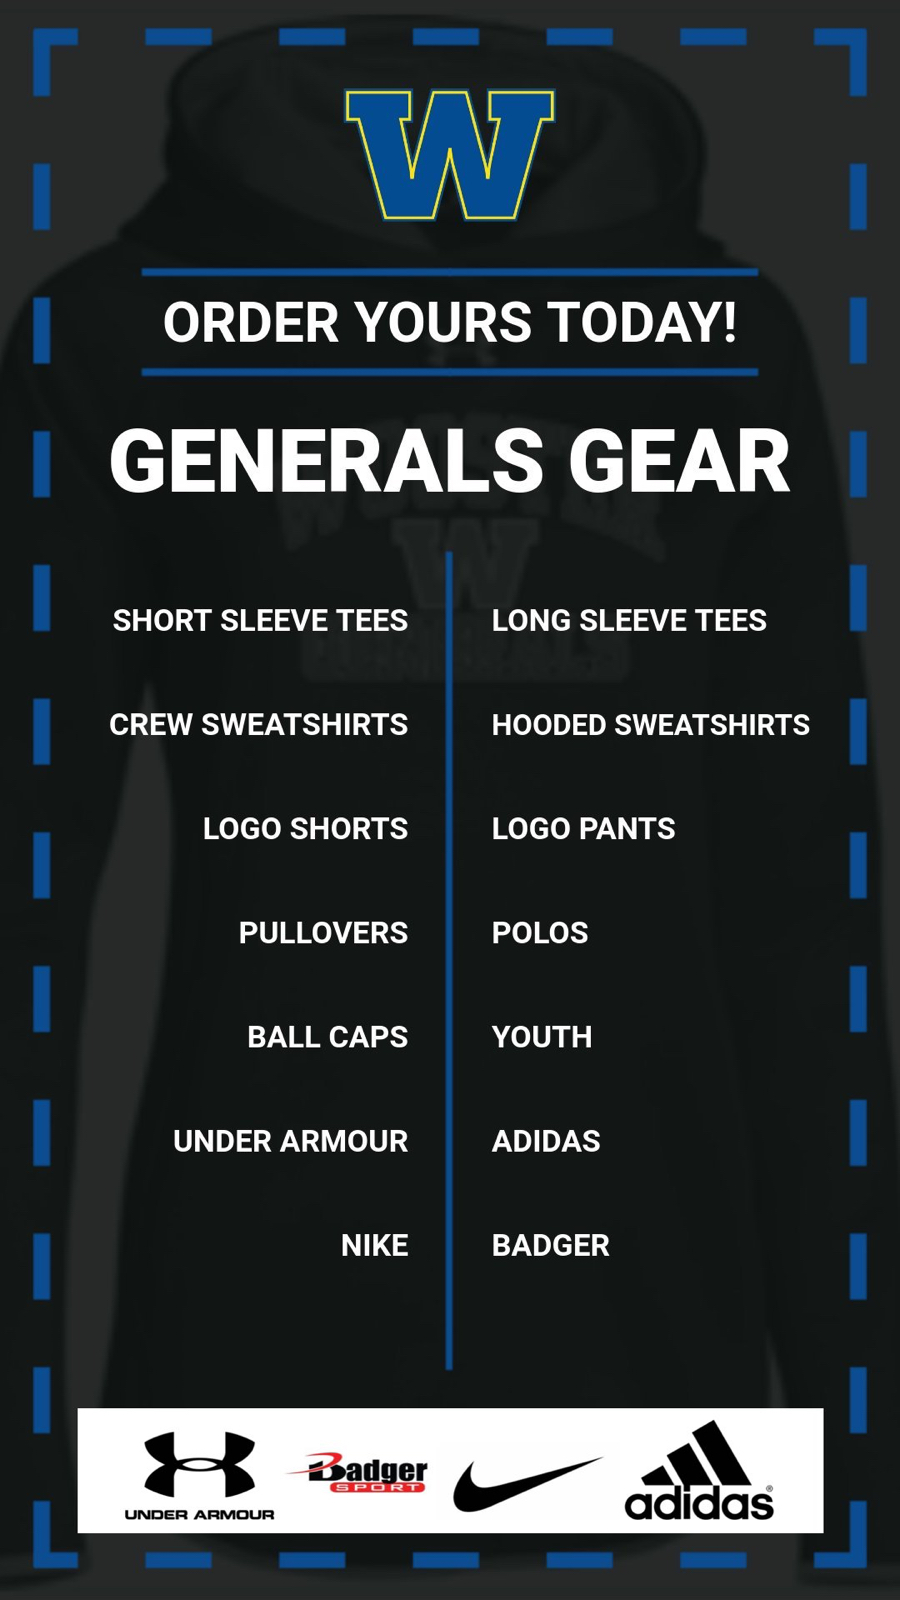 Generals Gear- Order Yours Today!